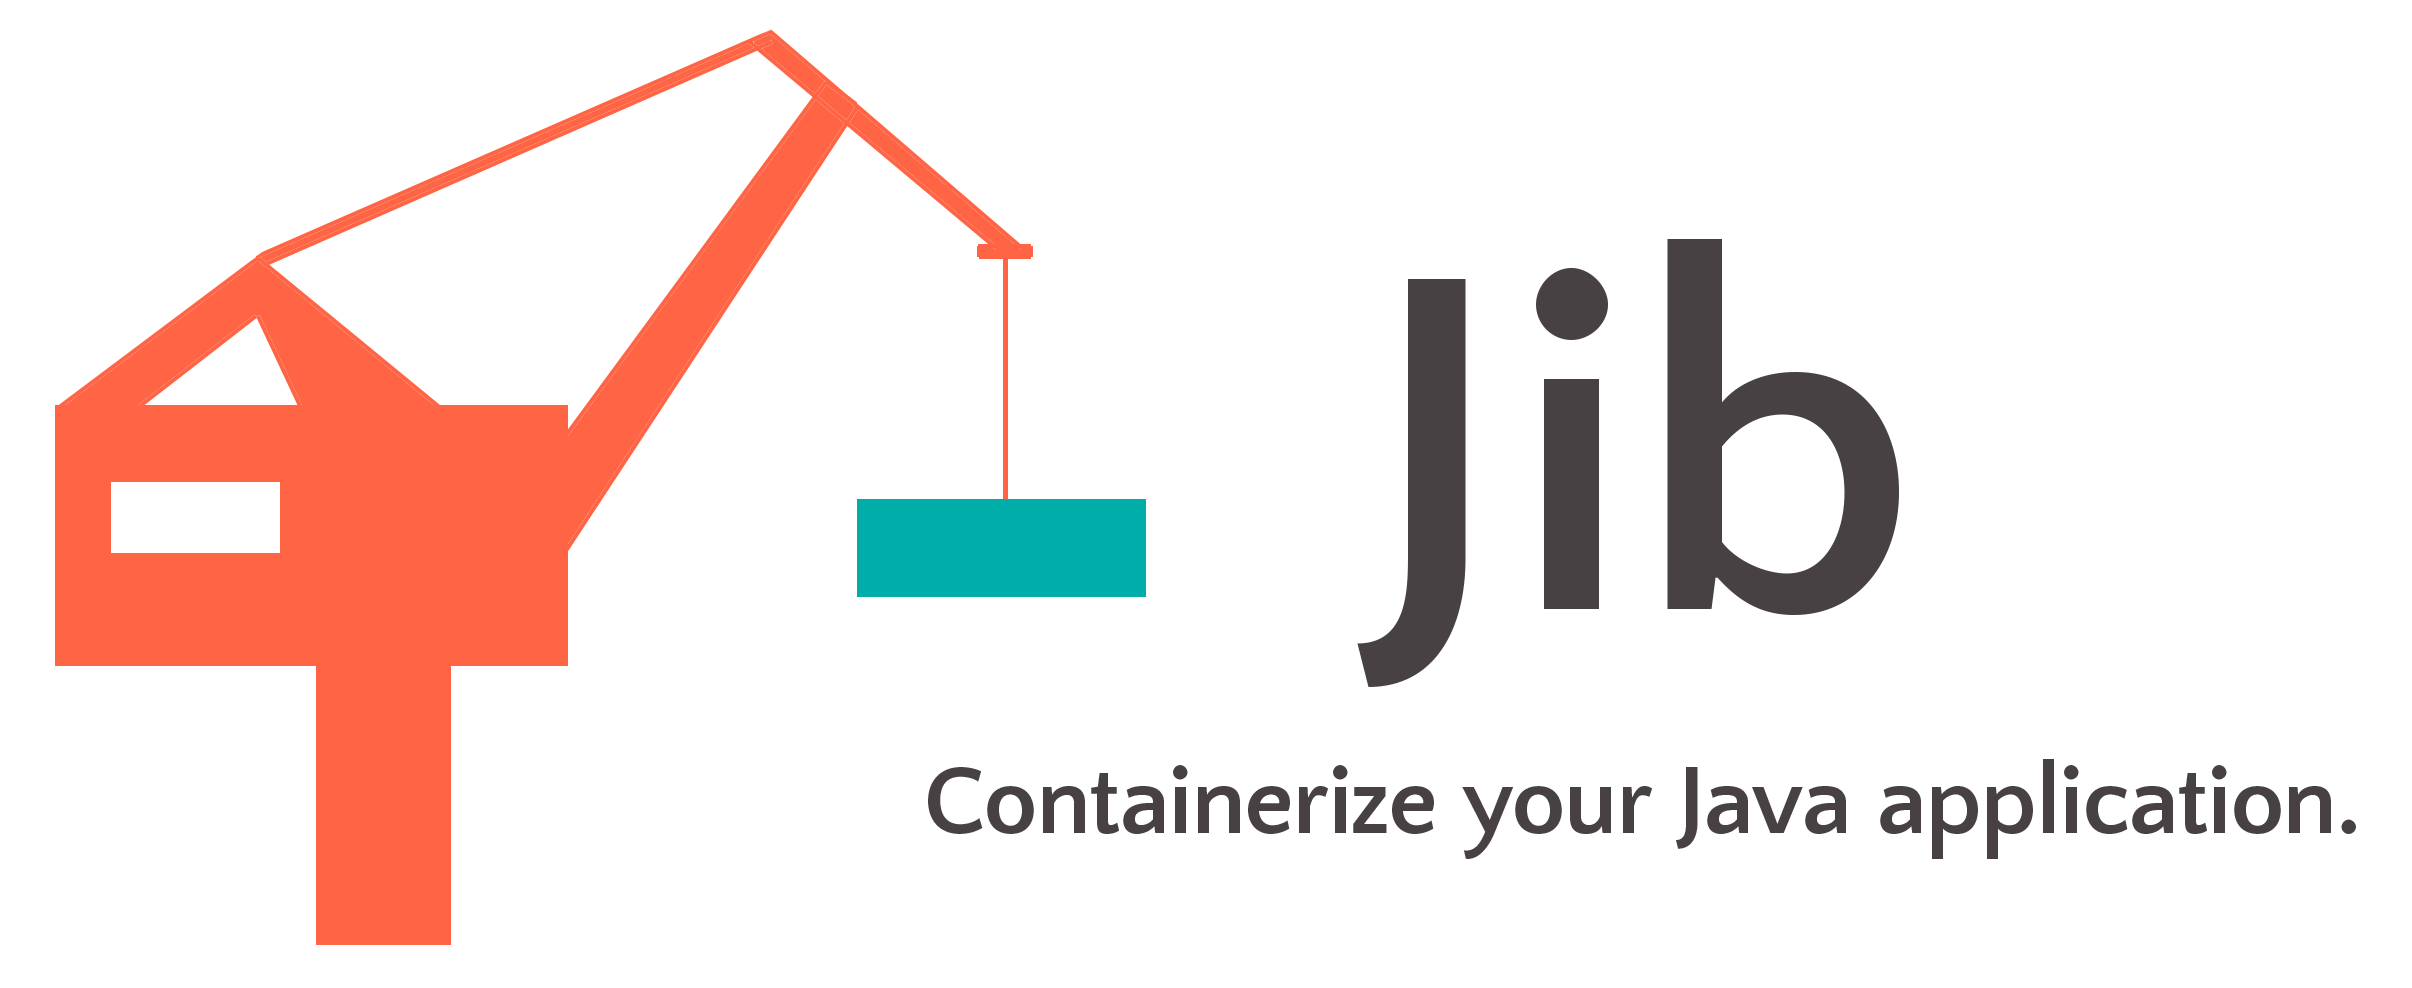 Google releases Jib for containerizing Java applications